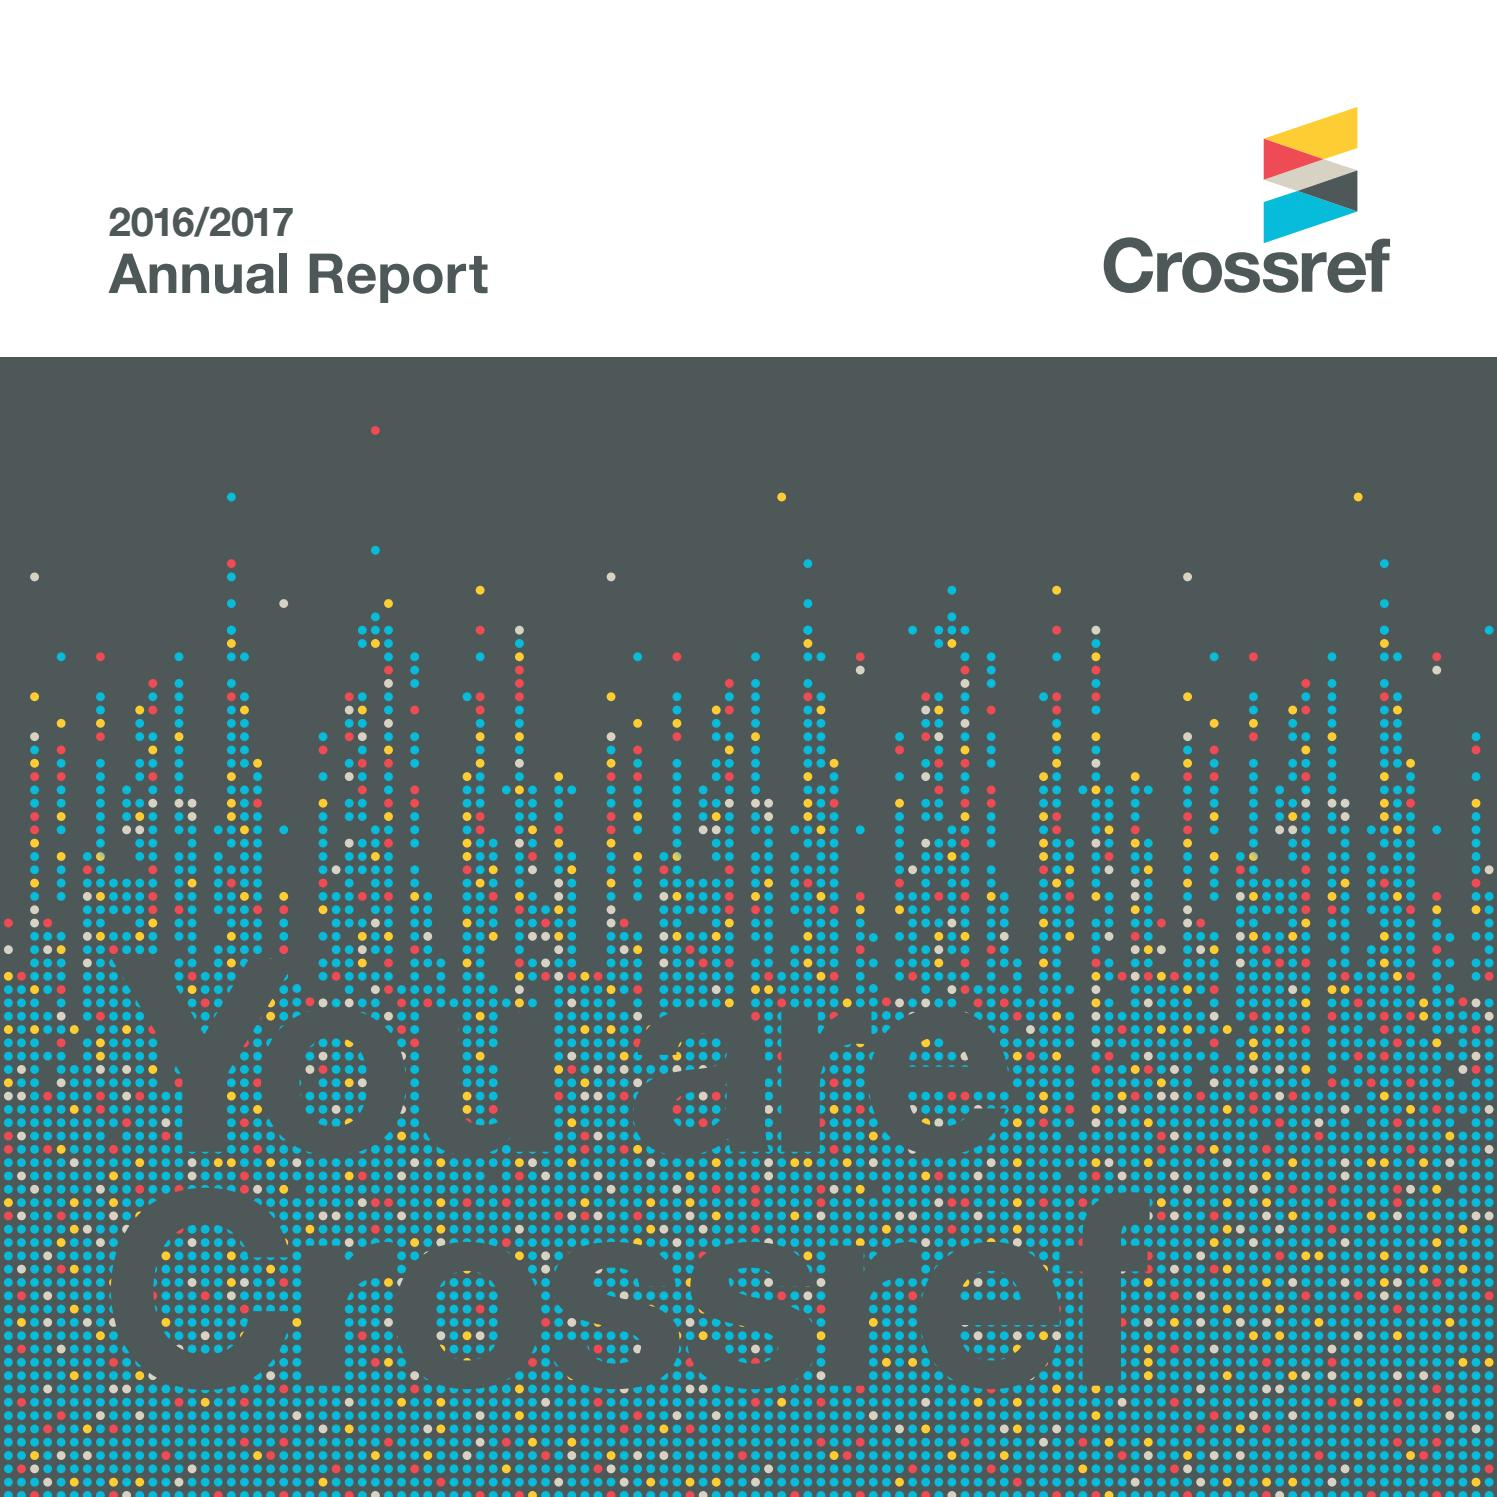 Crossref Annual Report 2016-2017 by Crossref - issuu